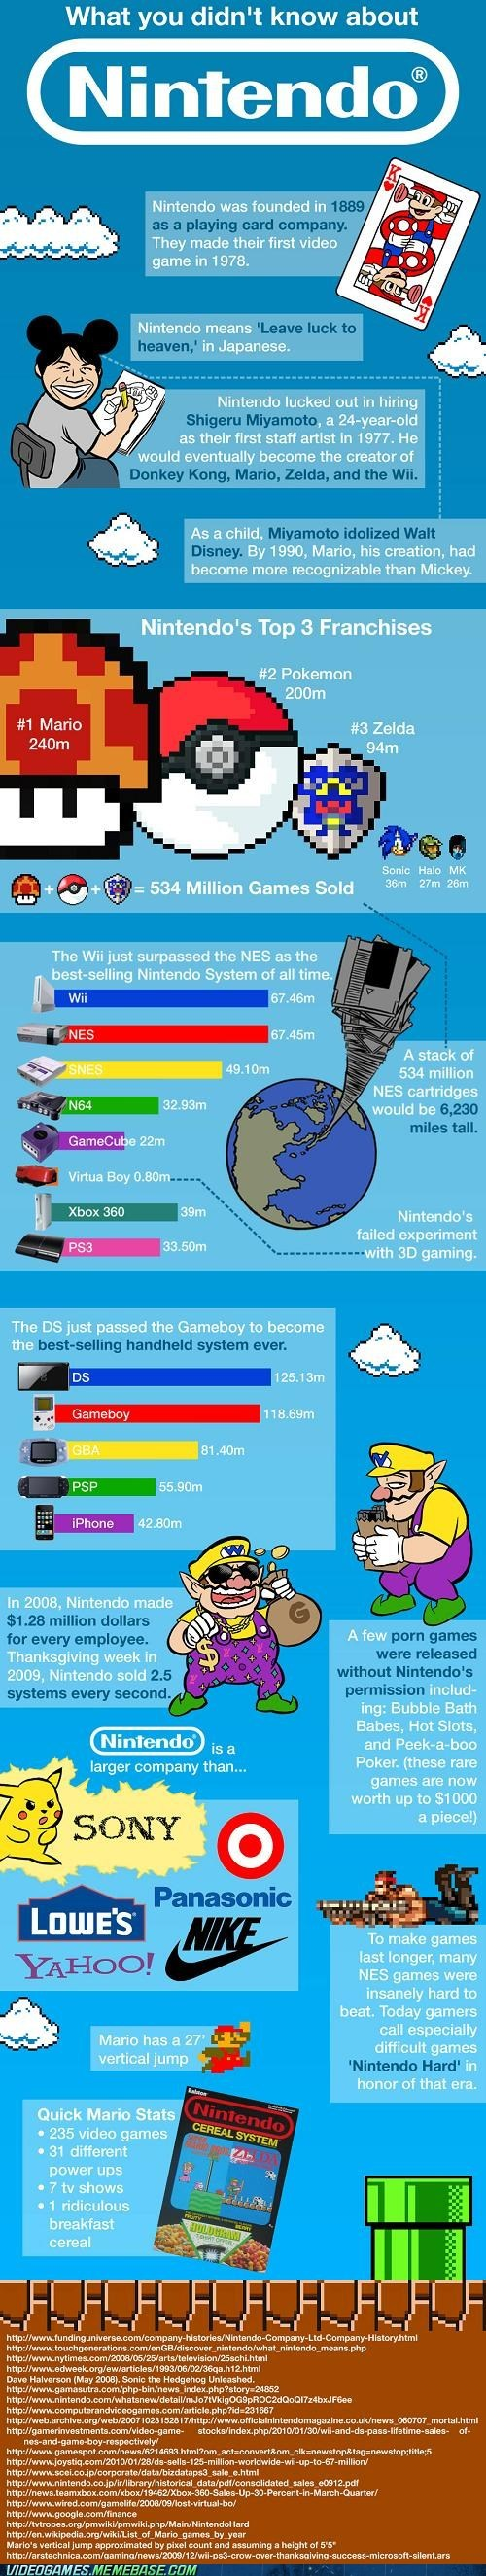 facts infographic nintendo - 6547481856